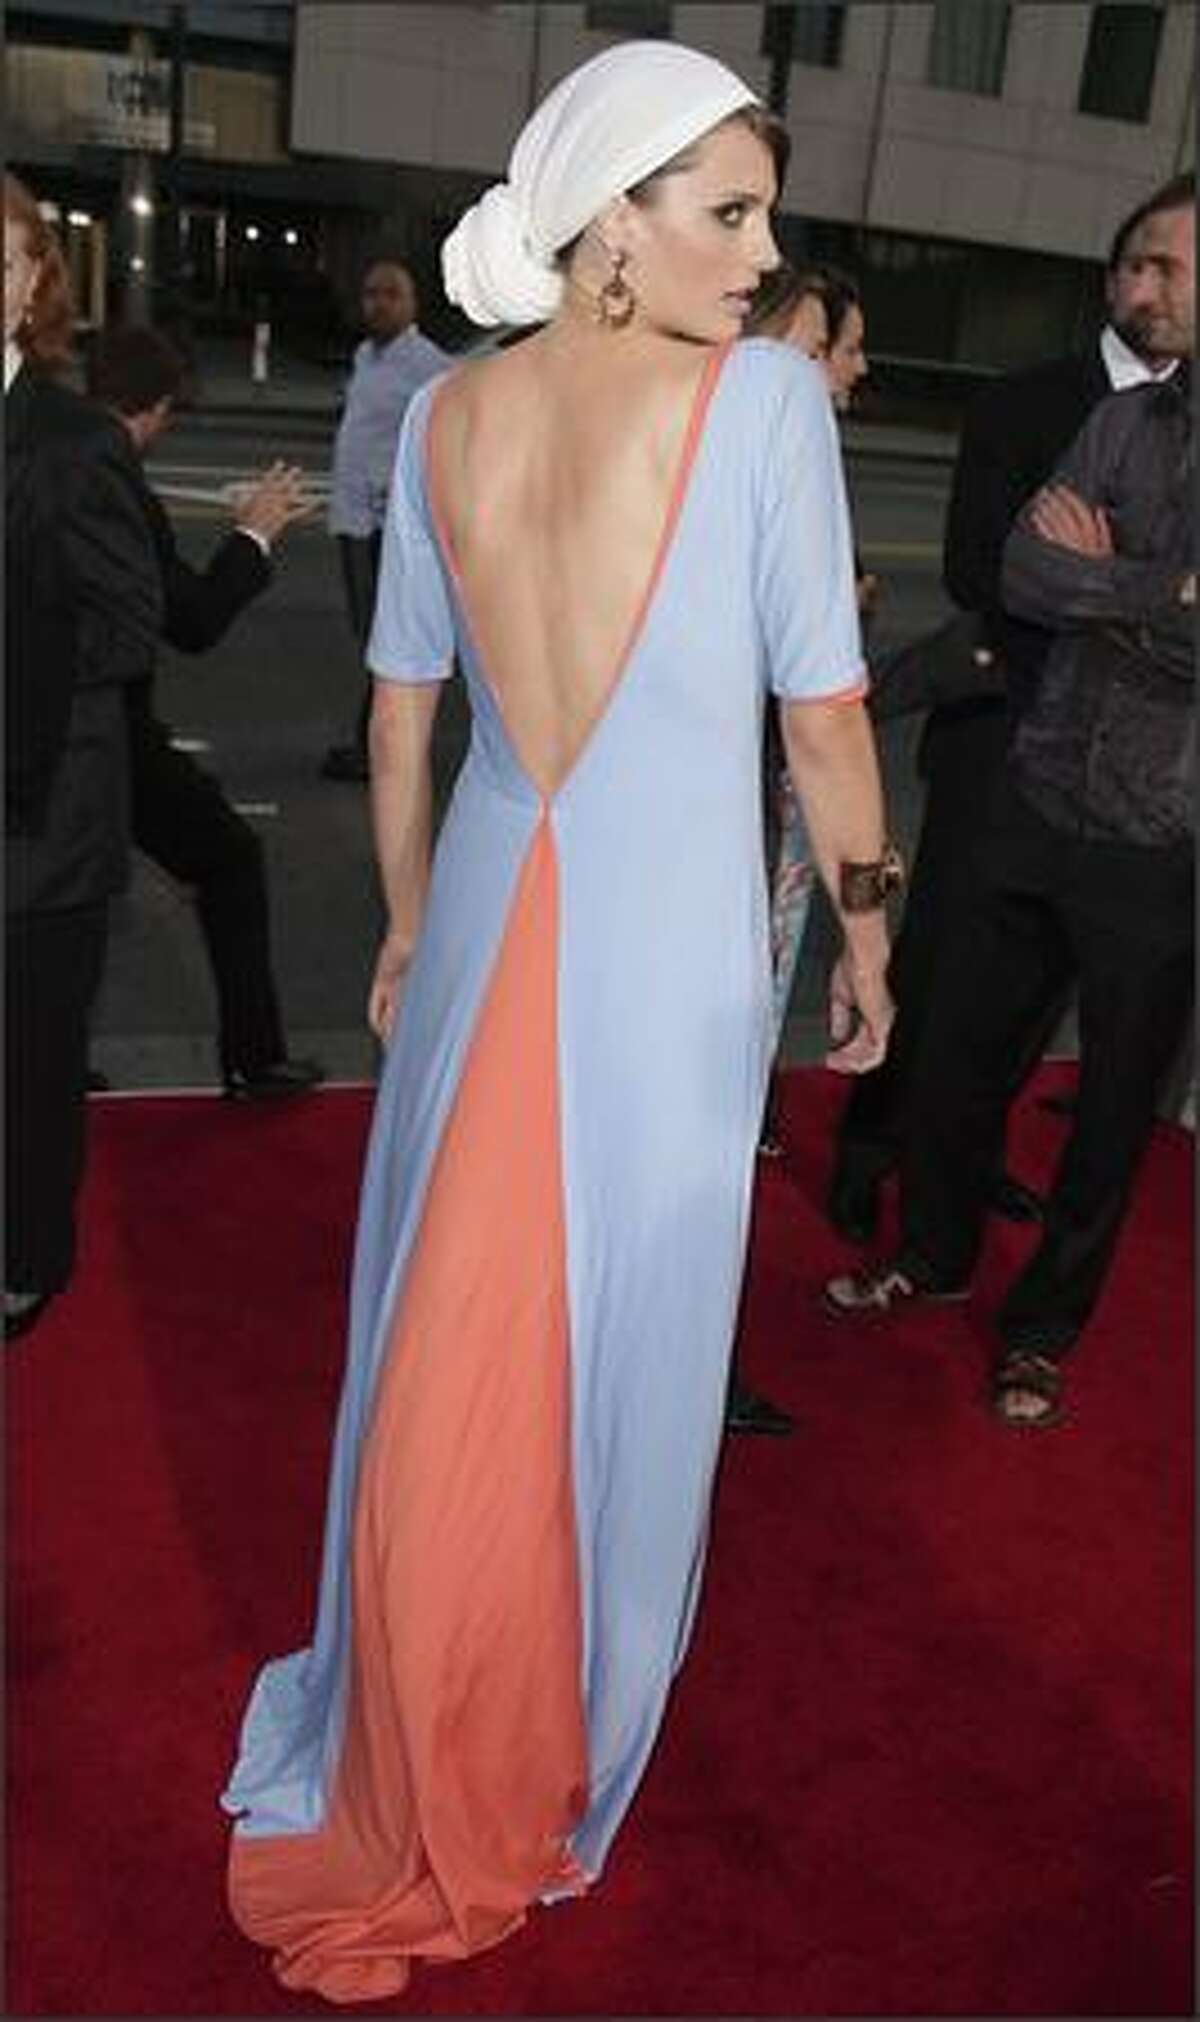 Actress Stana Katic arrives at the premiere of MGM's